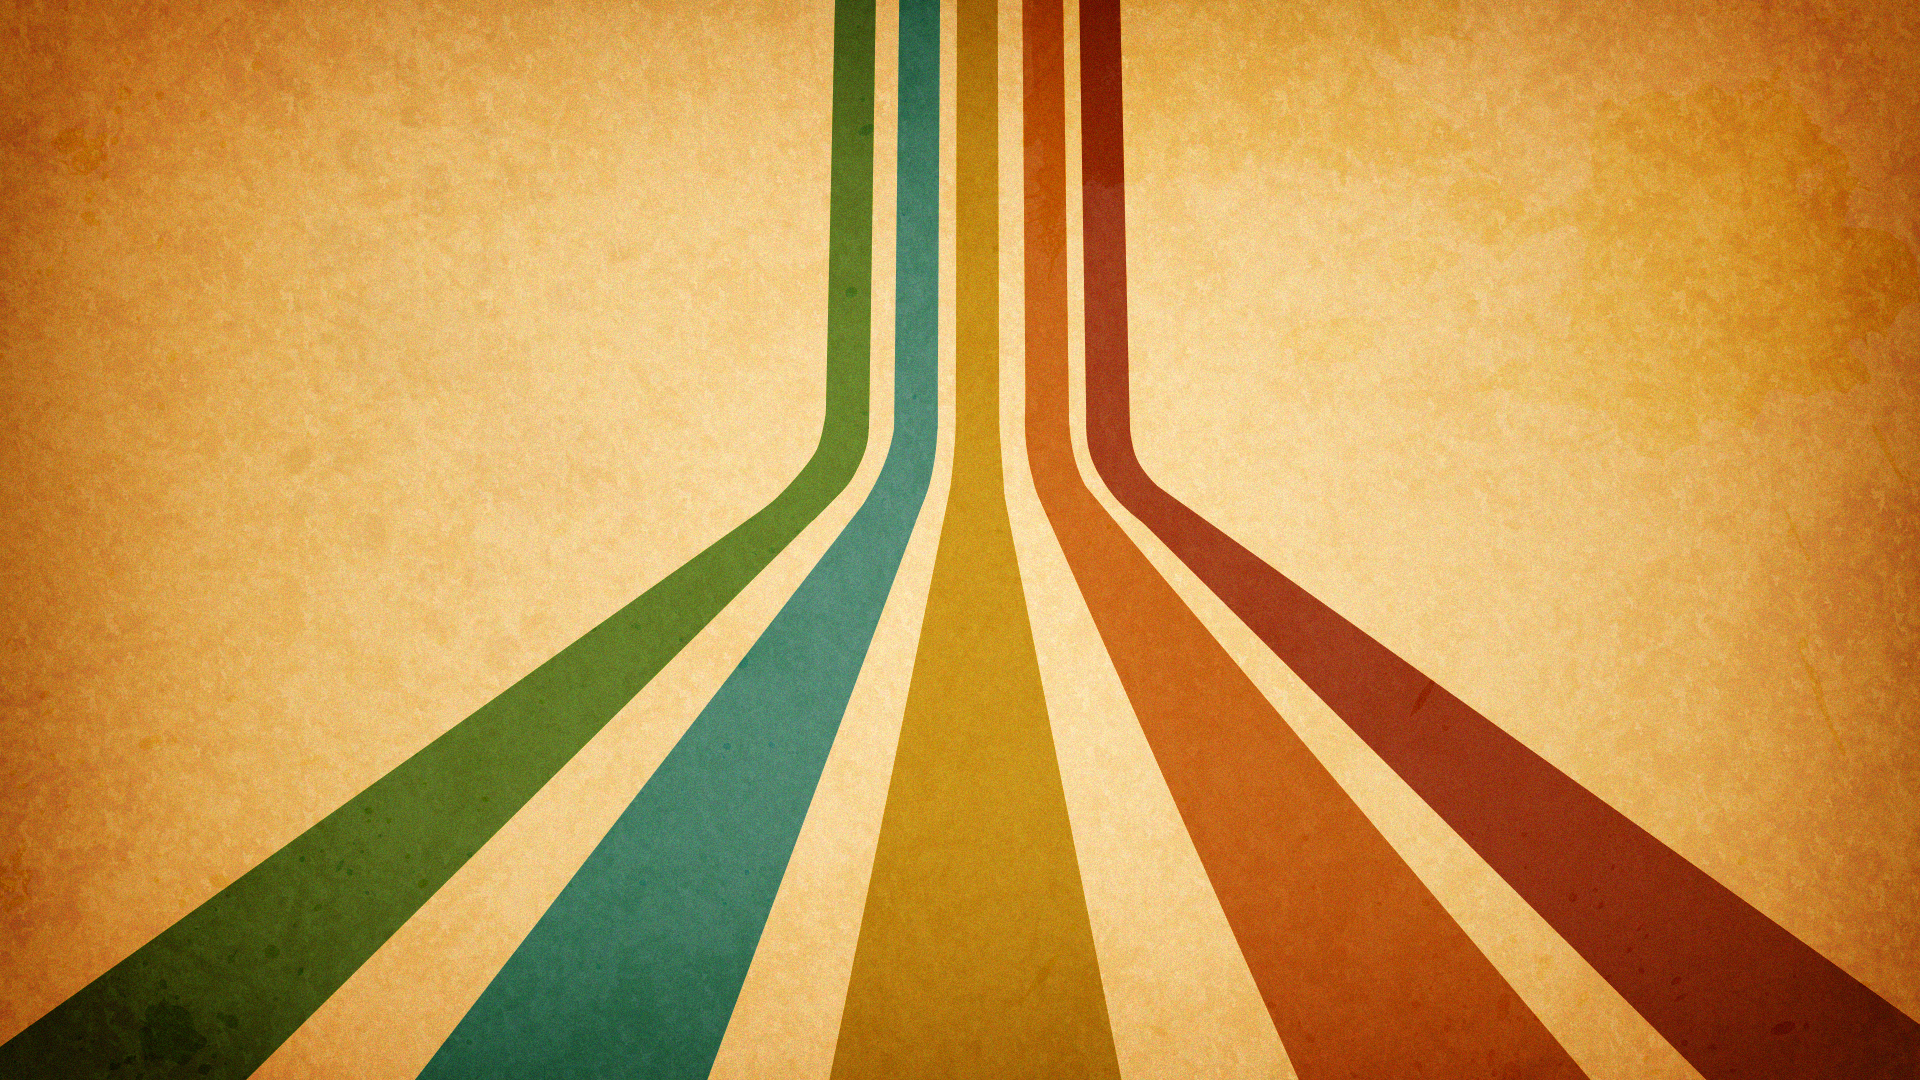 Free download Retro Vintage Wallpaper Background [20x20] for ...